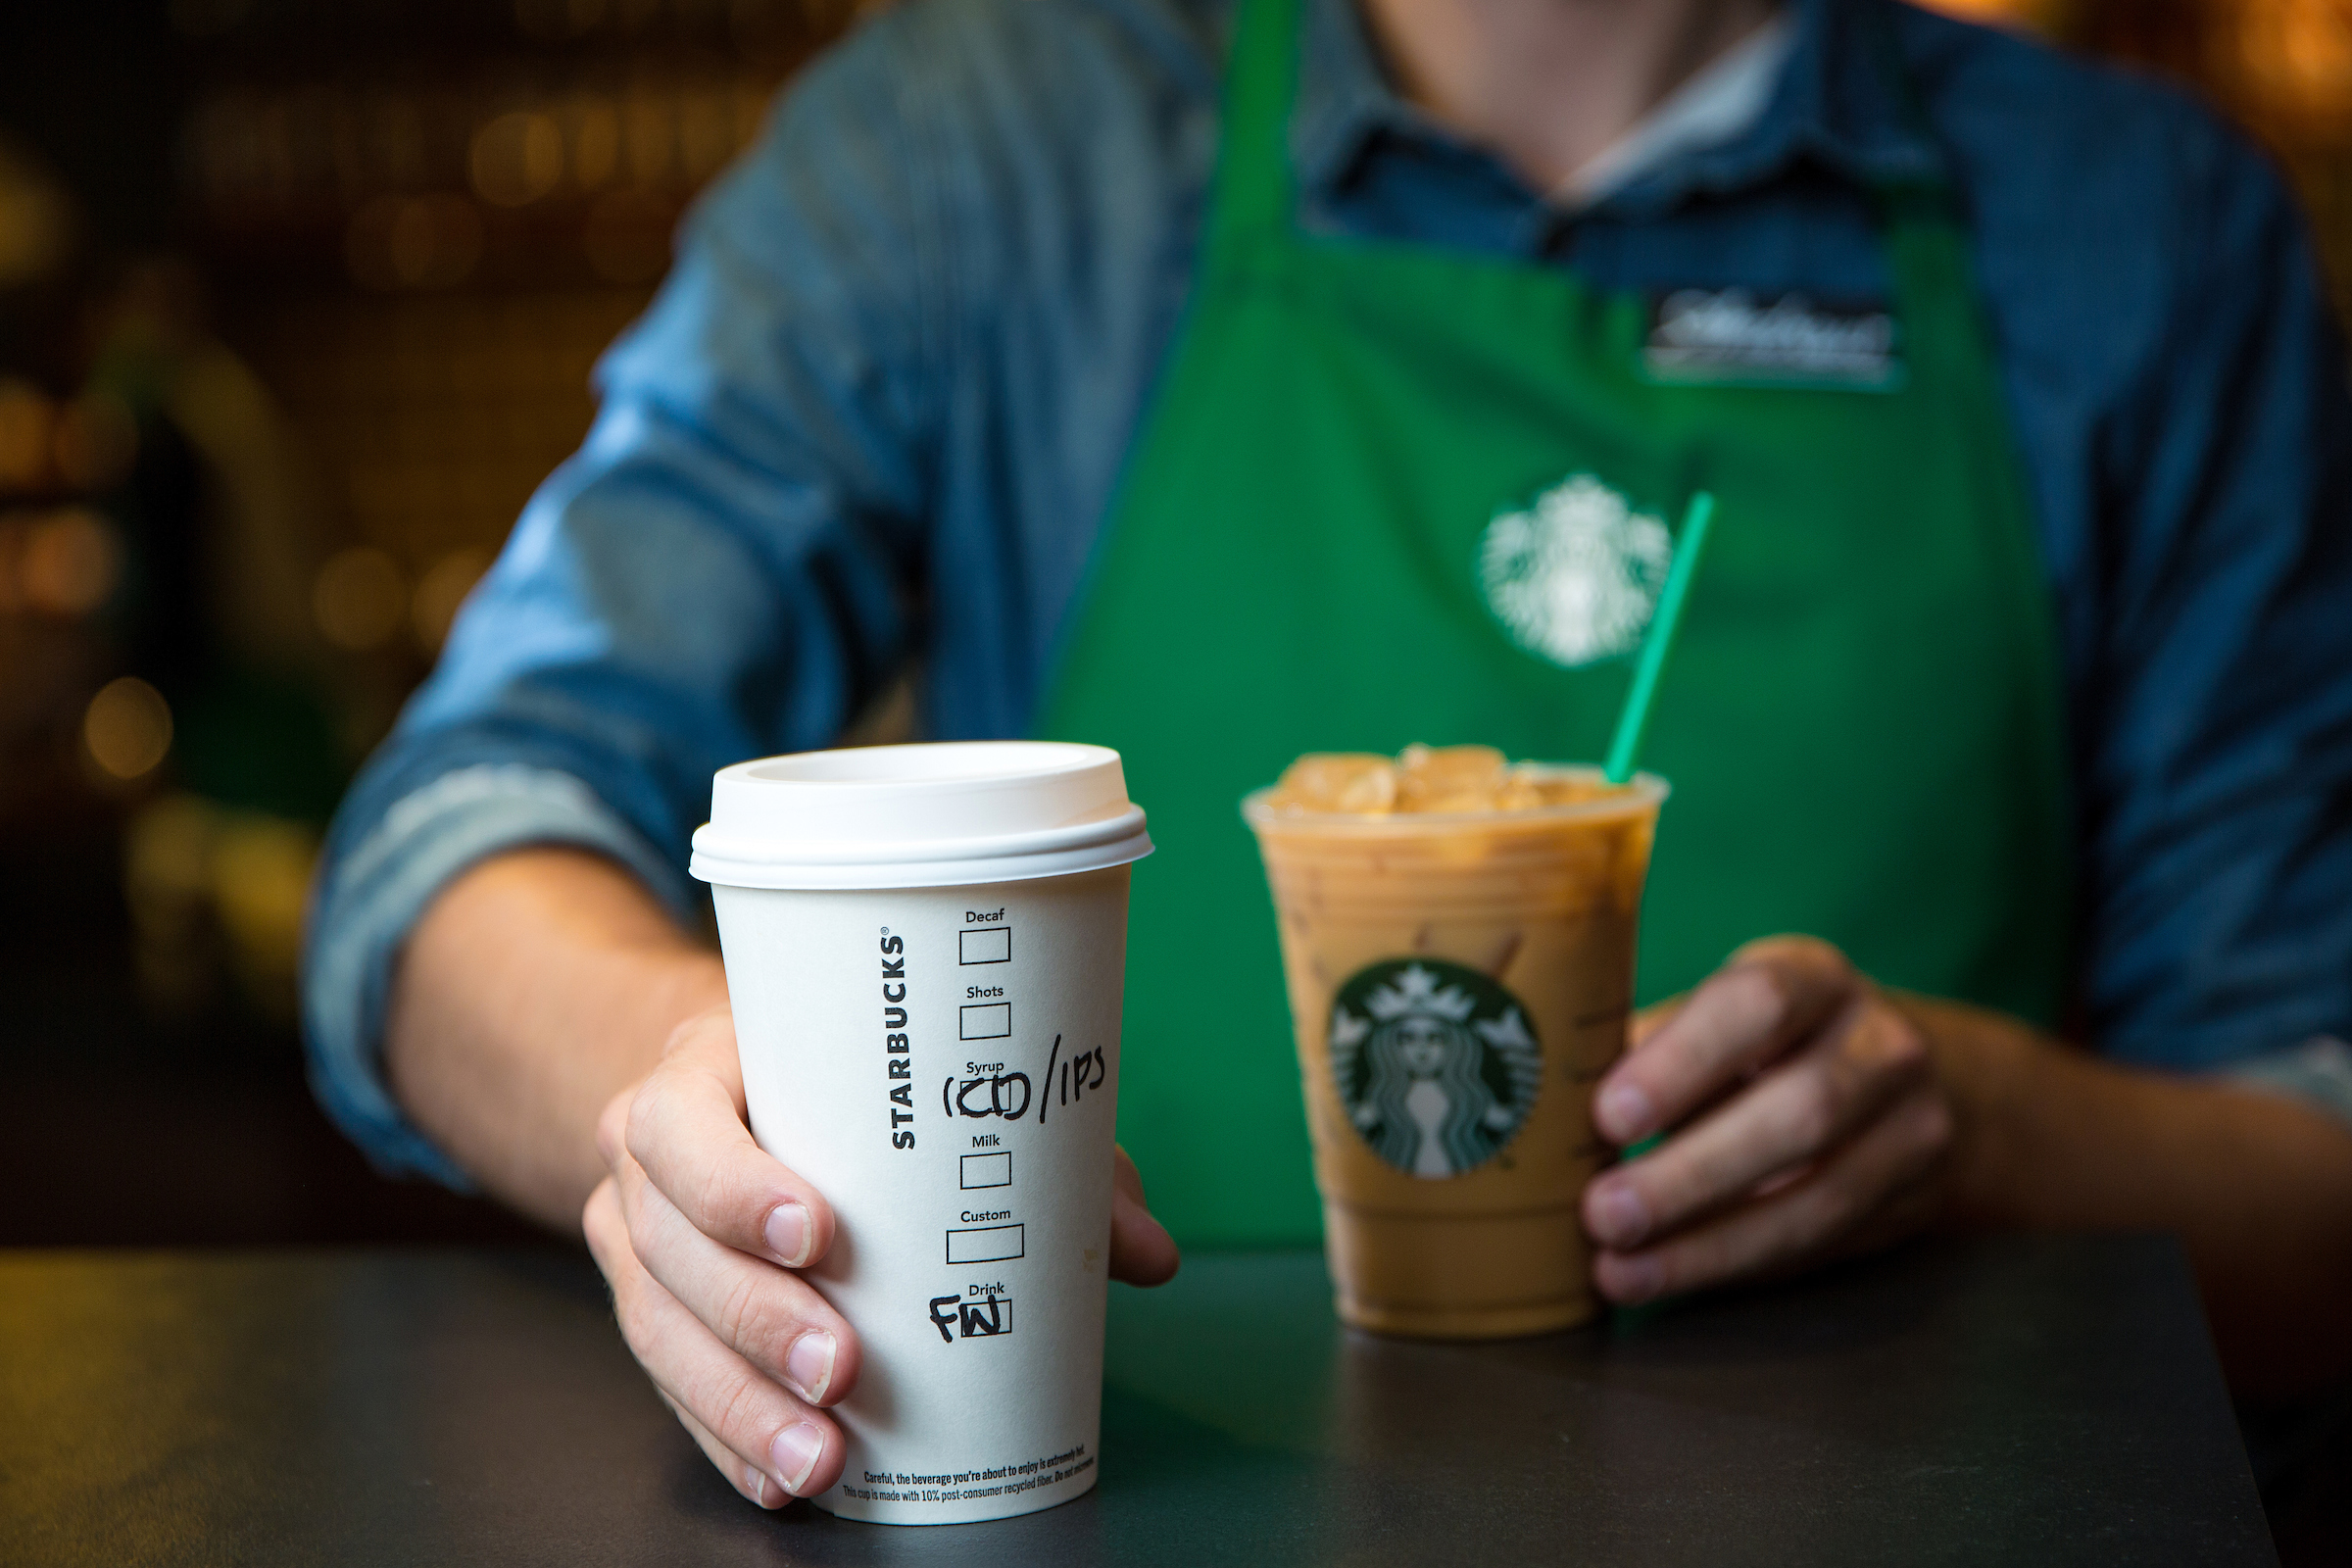 Starbucks baristas share their hacks — including the delicious-sounding Pumpkin Spice Cold Brew